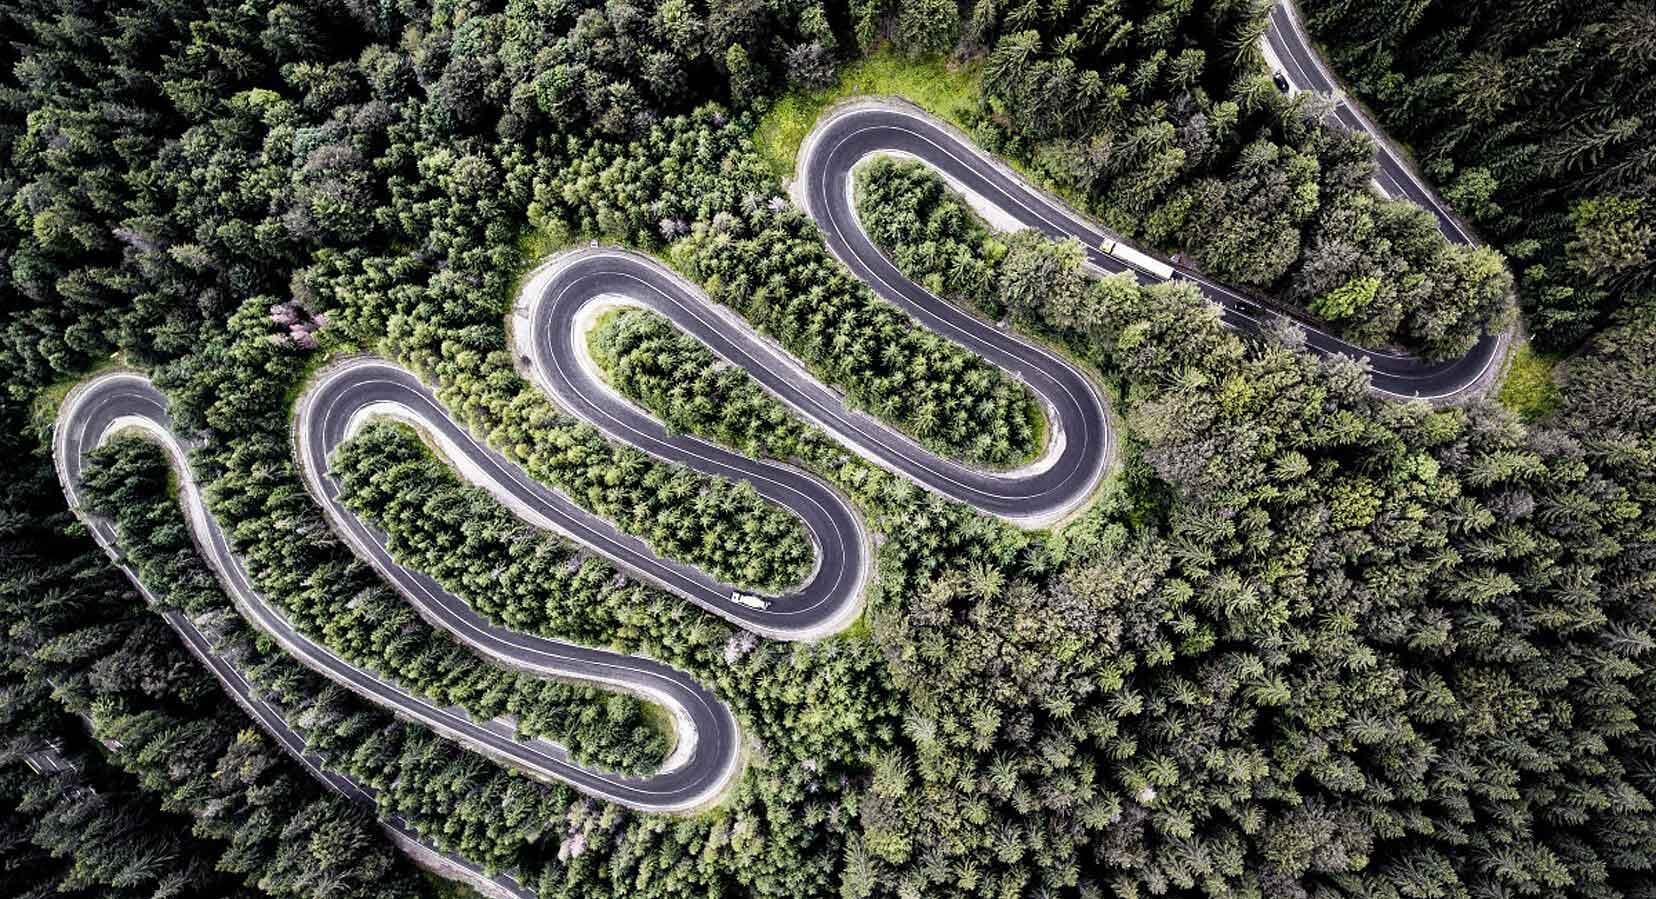 The Fascinating Winning Photographs in the Dronestagram 2017 Photo Contest